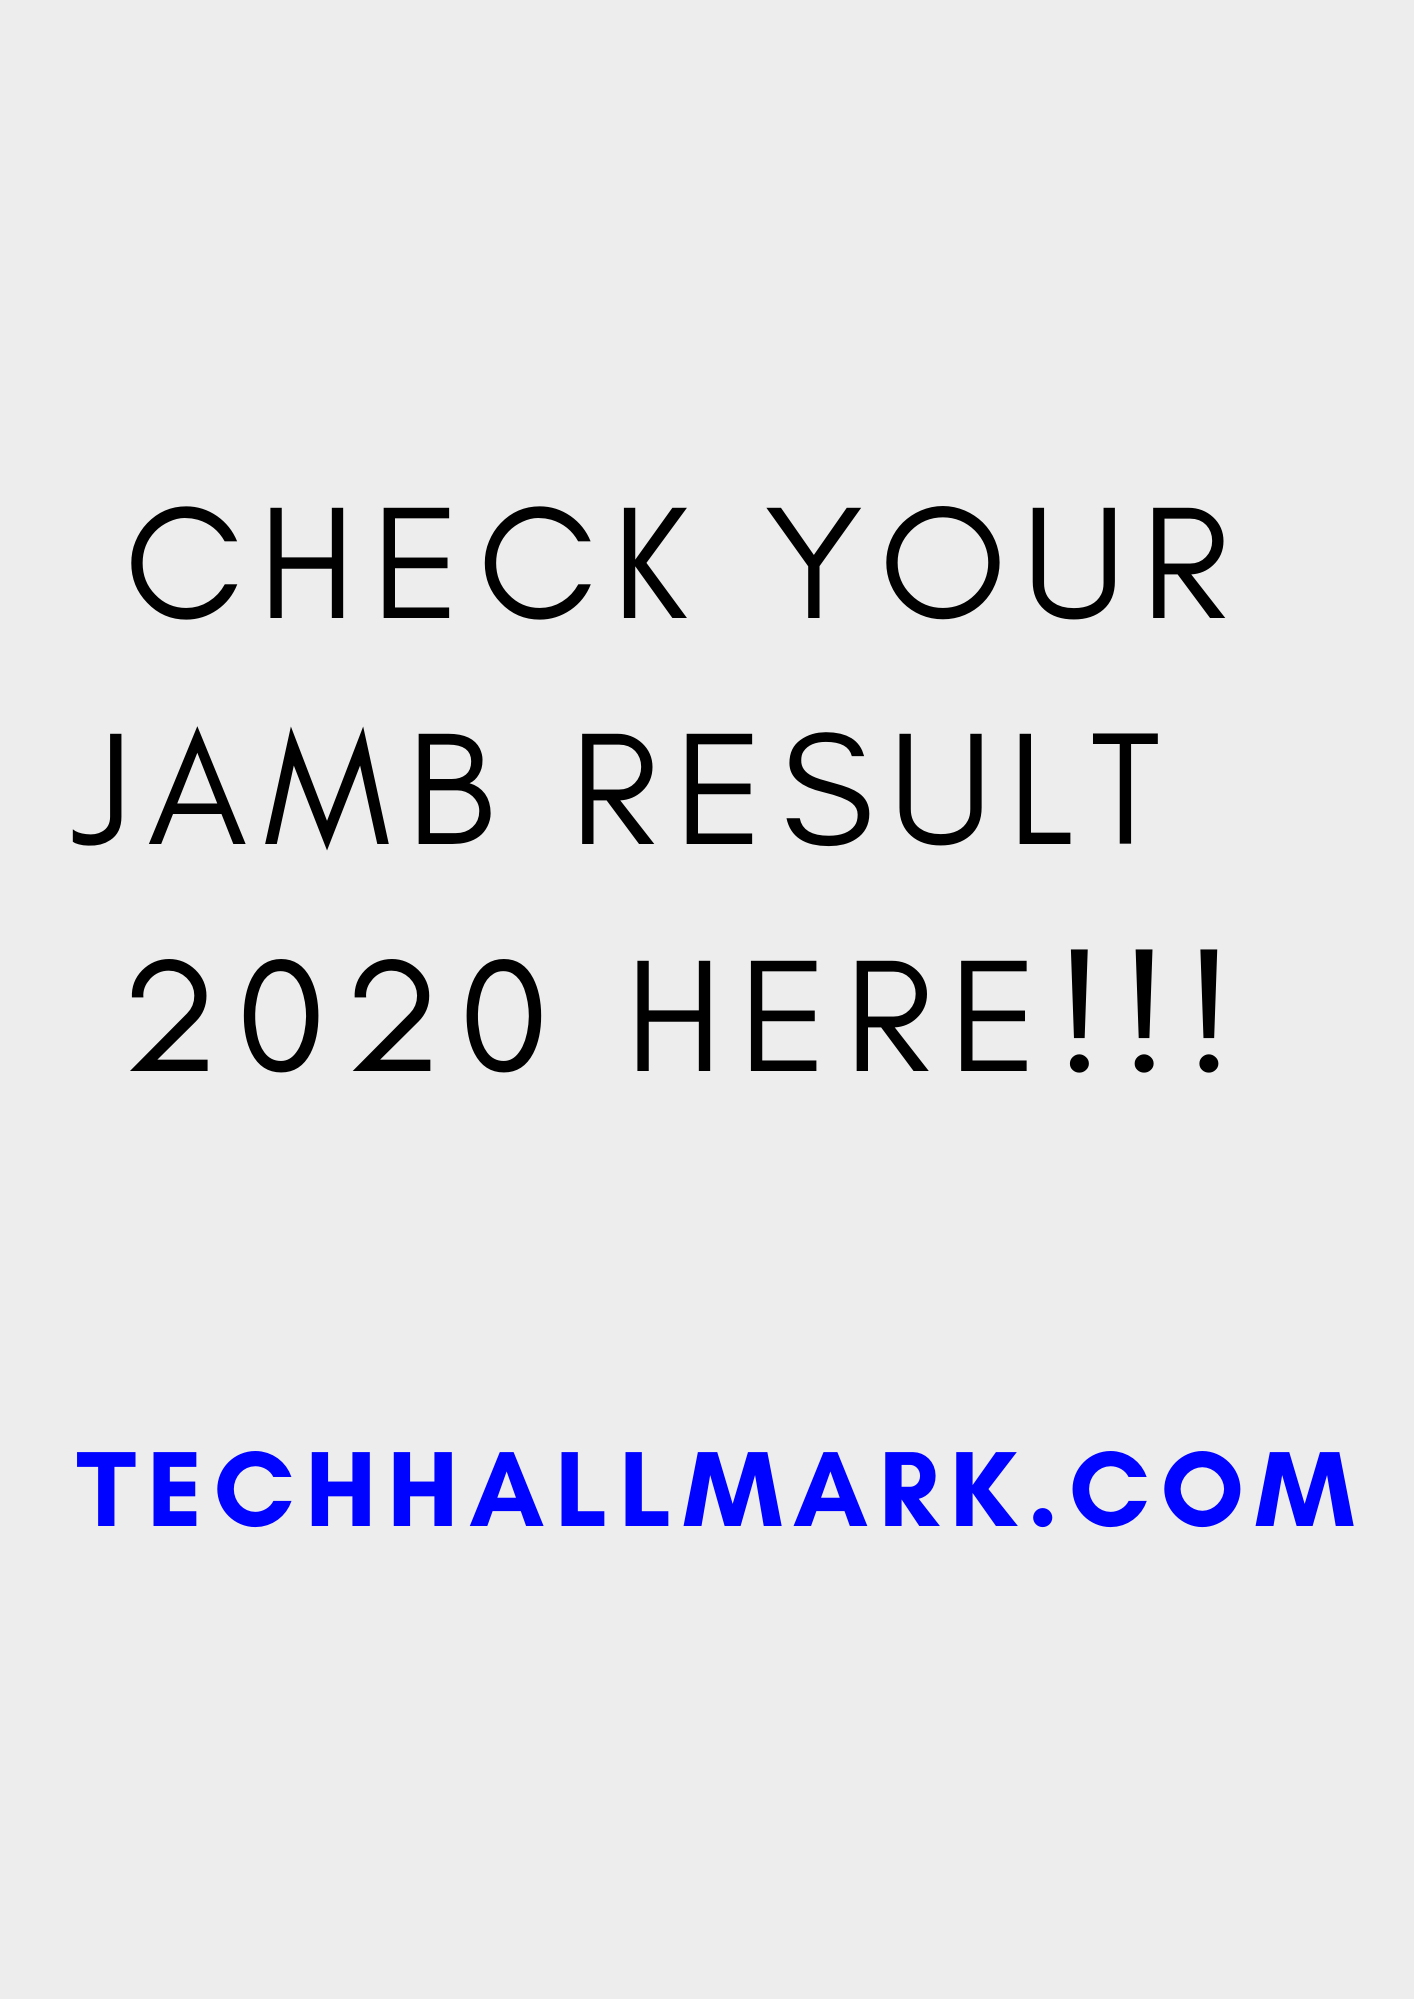 How can i check my jamb result